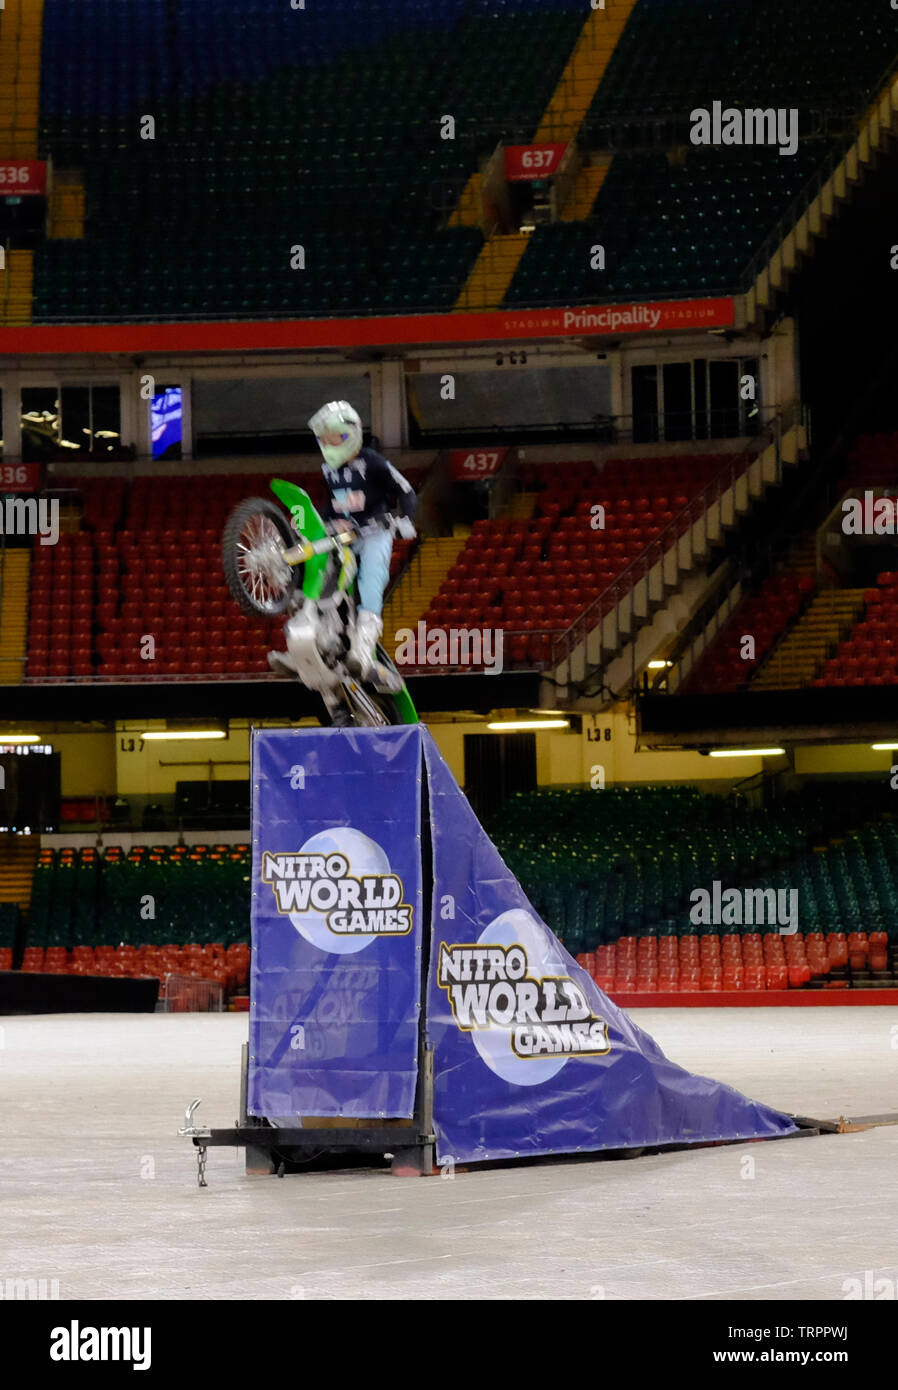 Cardiff, Wales, UK. 11th June 2019. Nitro World Games announce that the world's best action sports competition is coming to Wales in spring 2020. Elite competitors in Freestyle Motocross, BMX, skate and freestyle scooter will be vying for trophies and bragging rights. The event is a partnership between Nitro Circus, Live Nation, Principality Stadium, Visit Wales and Cardiff Council. Credit: Mr Standfast/Alamy Live News - Stock Image